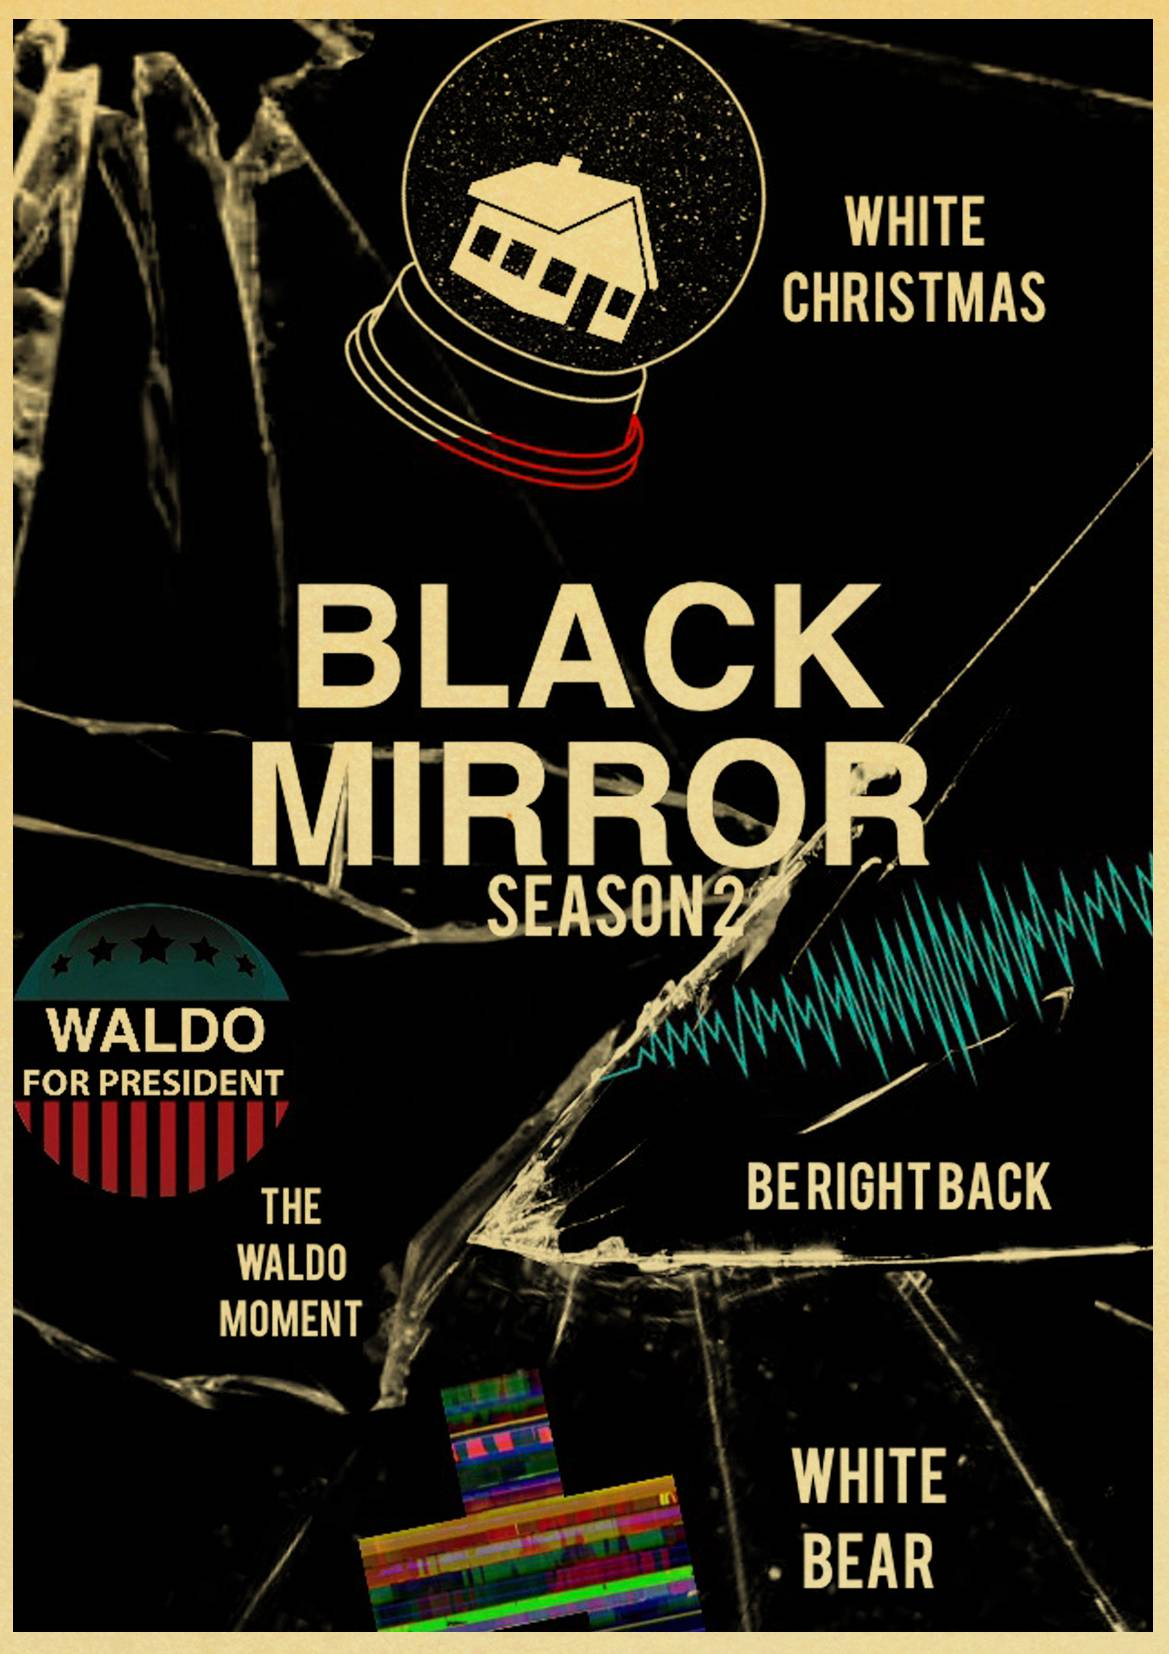 White Christmas Black Mirror Poster.Us 1 79 15 Off Tv Series Black Mirror Poster High Quality Kraft Paper Print Painting Retro Poster Home Wall Art Wall Sticker In Wall Stickers From